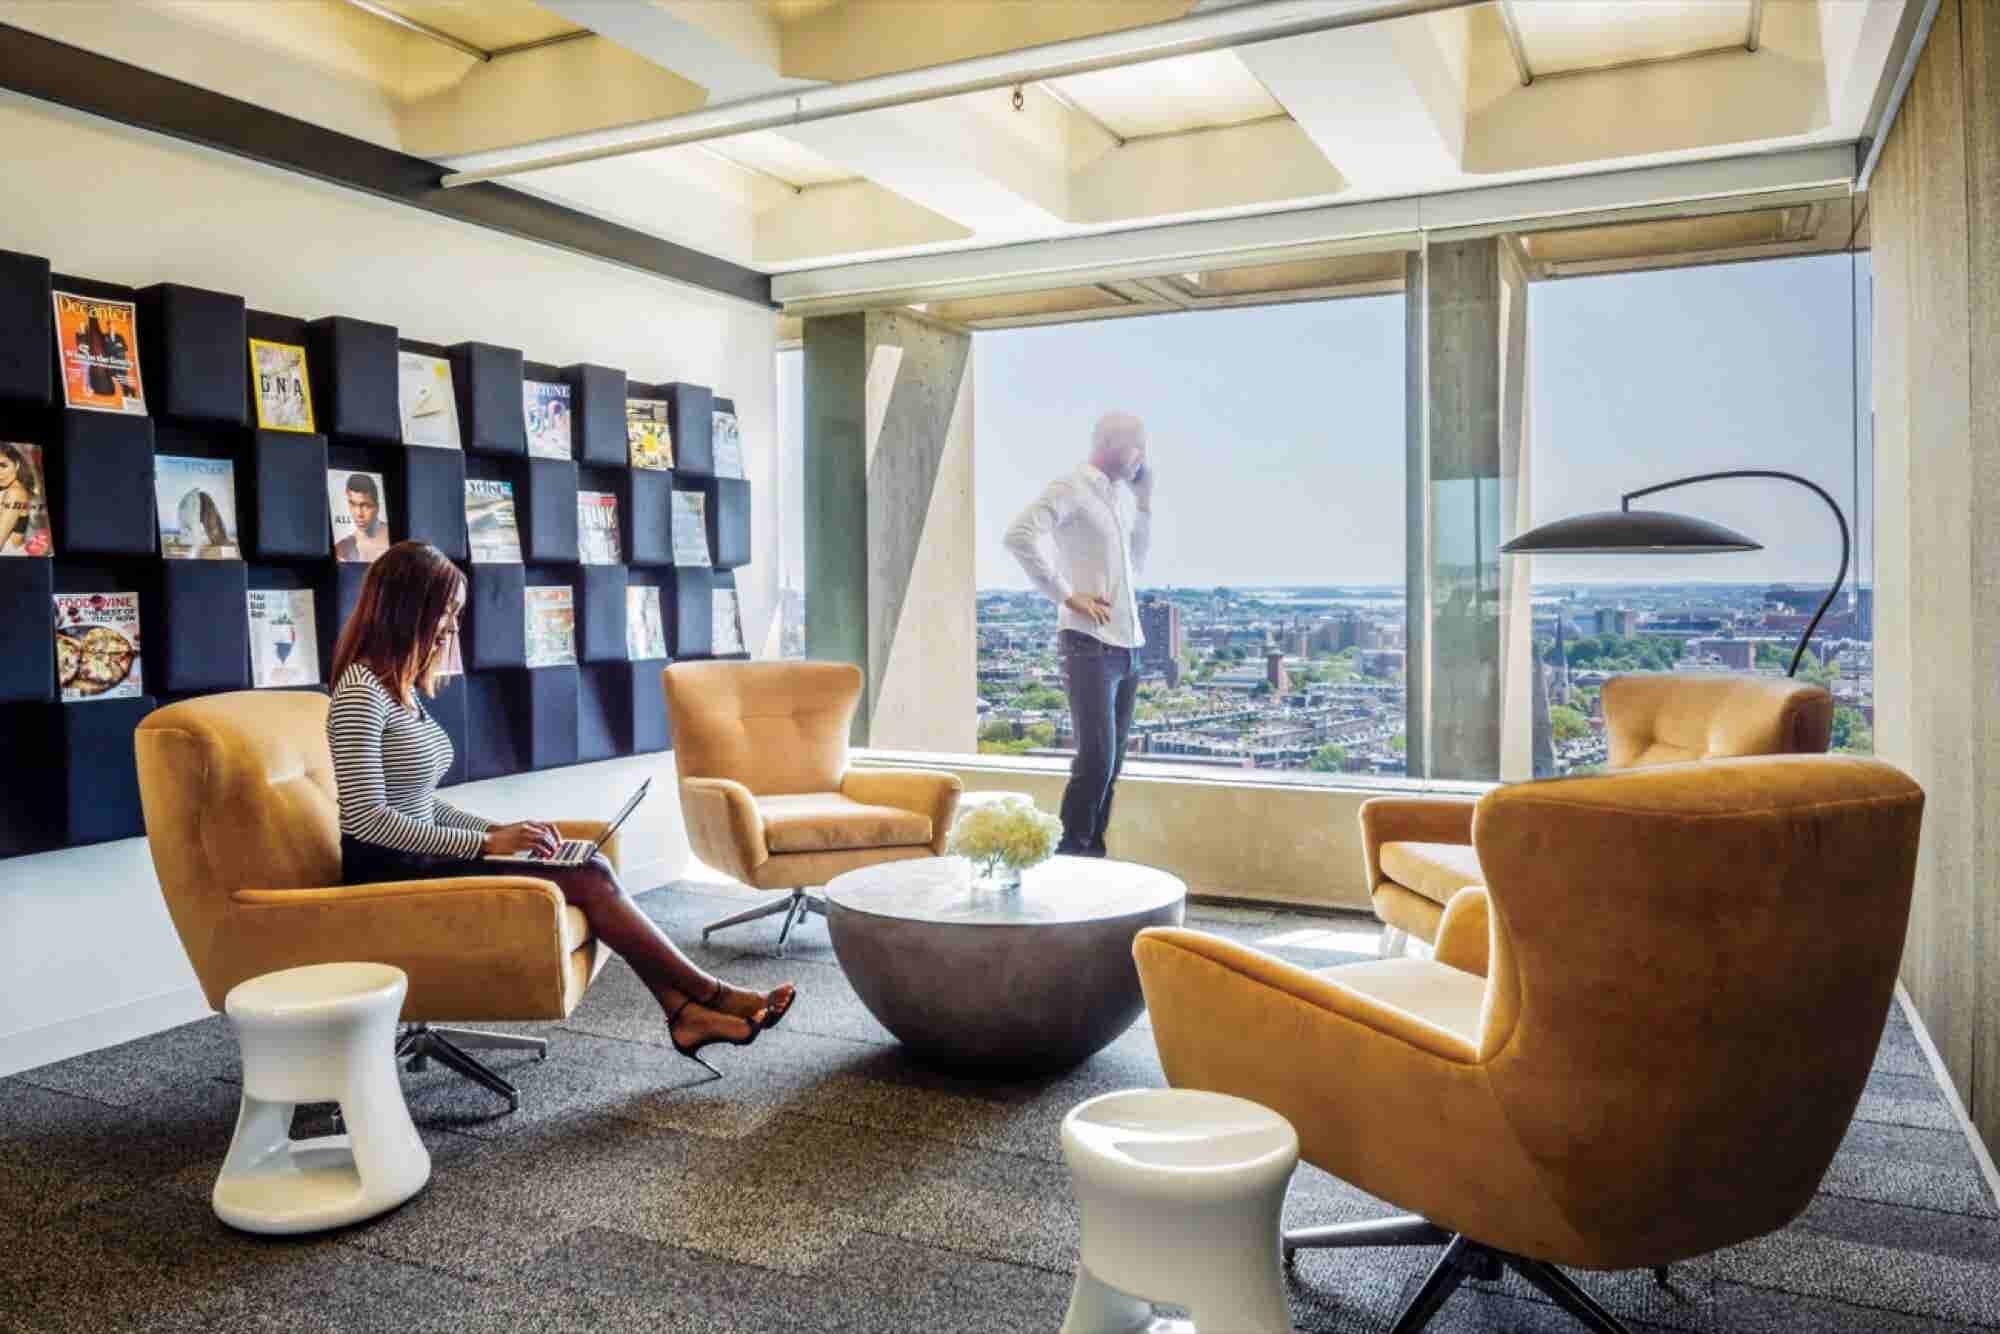 What's Your Coworking Style? Find the Space That Matches Your Style.